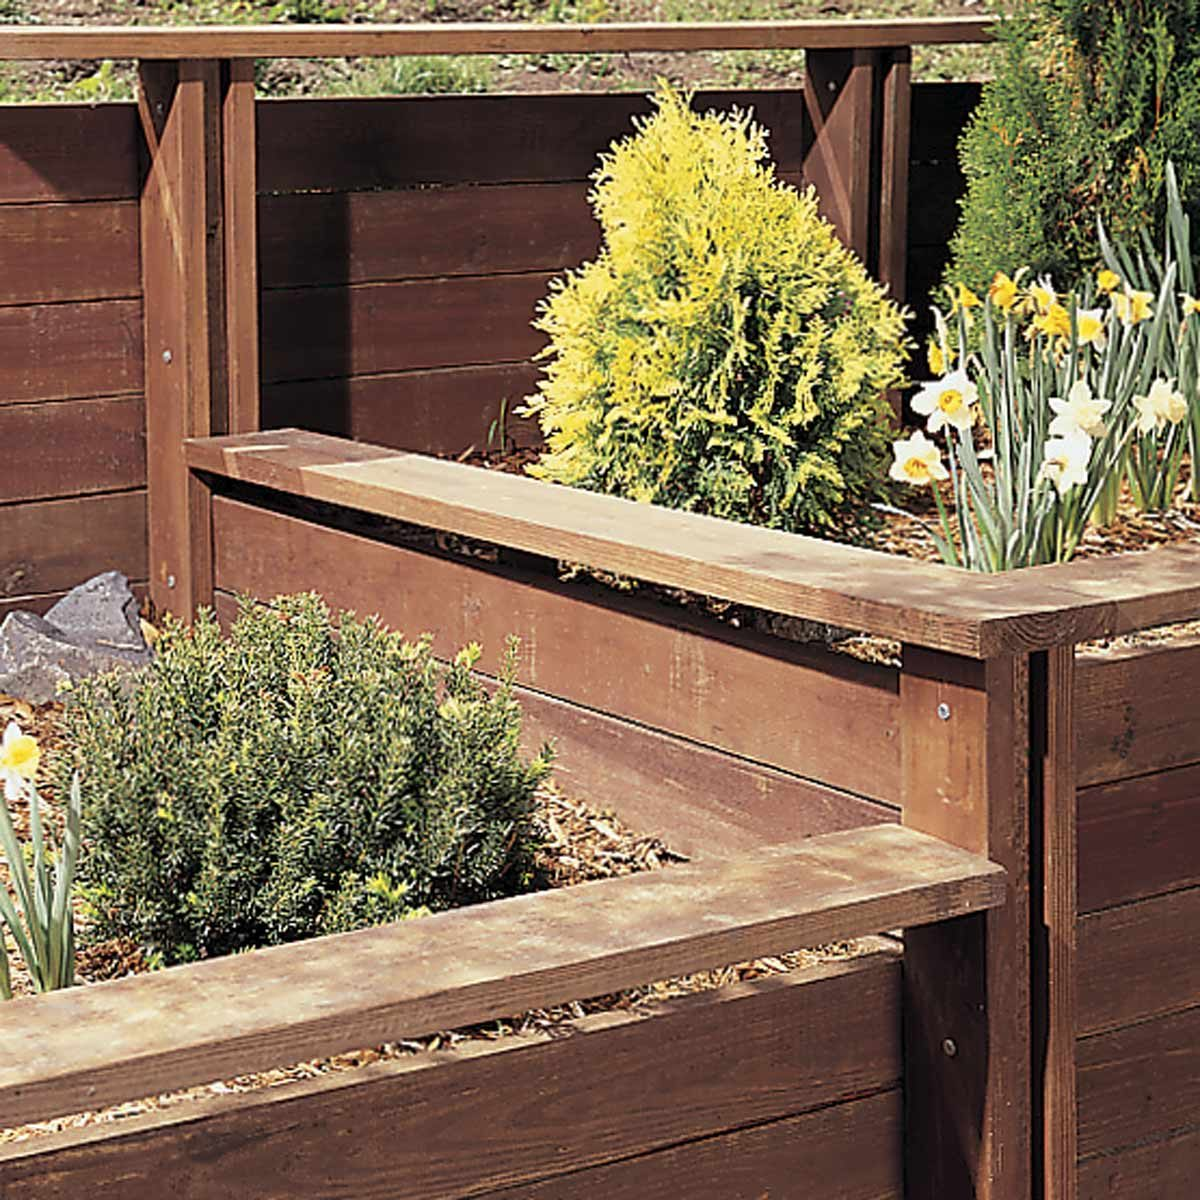 How to Build a Treated Wood Retaining Wall | Family Handyman